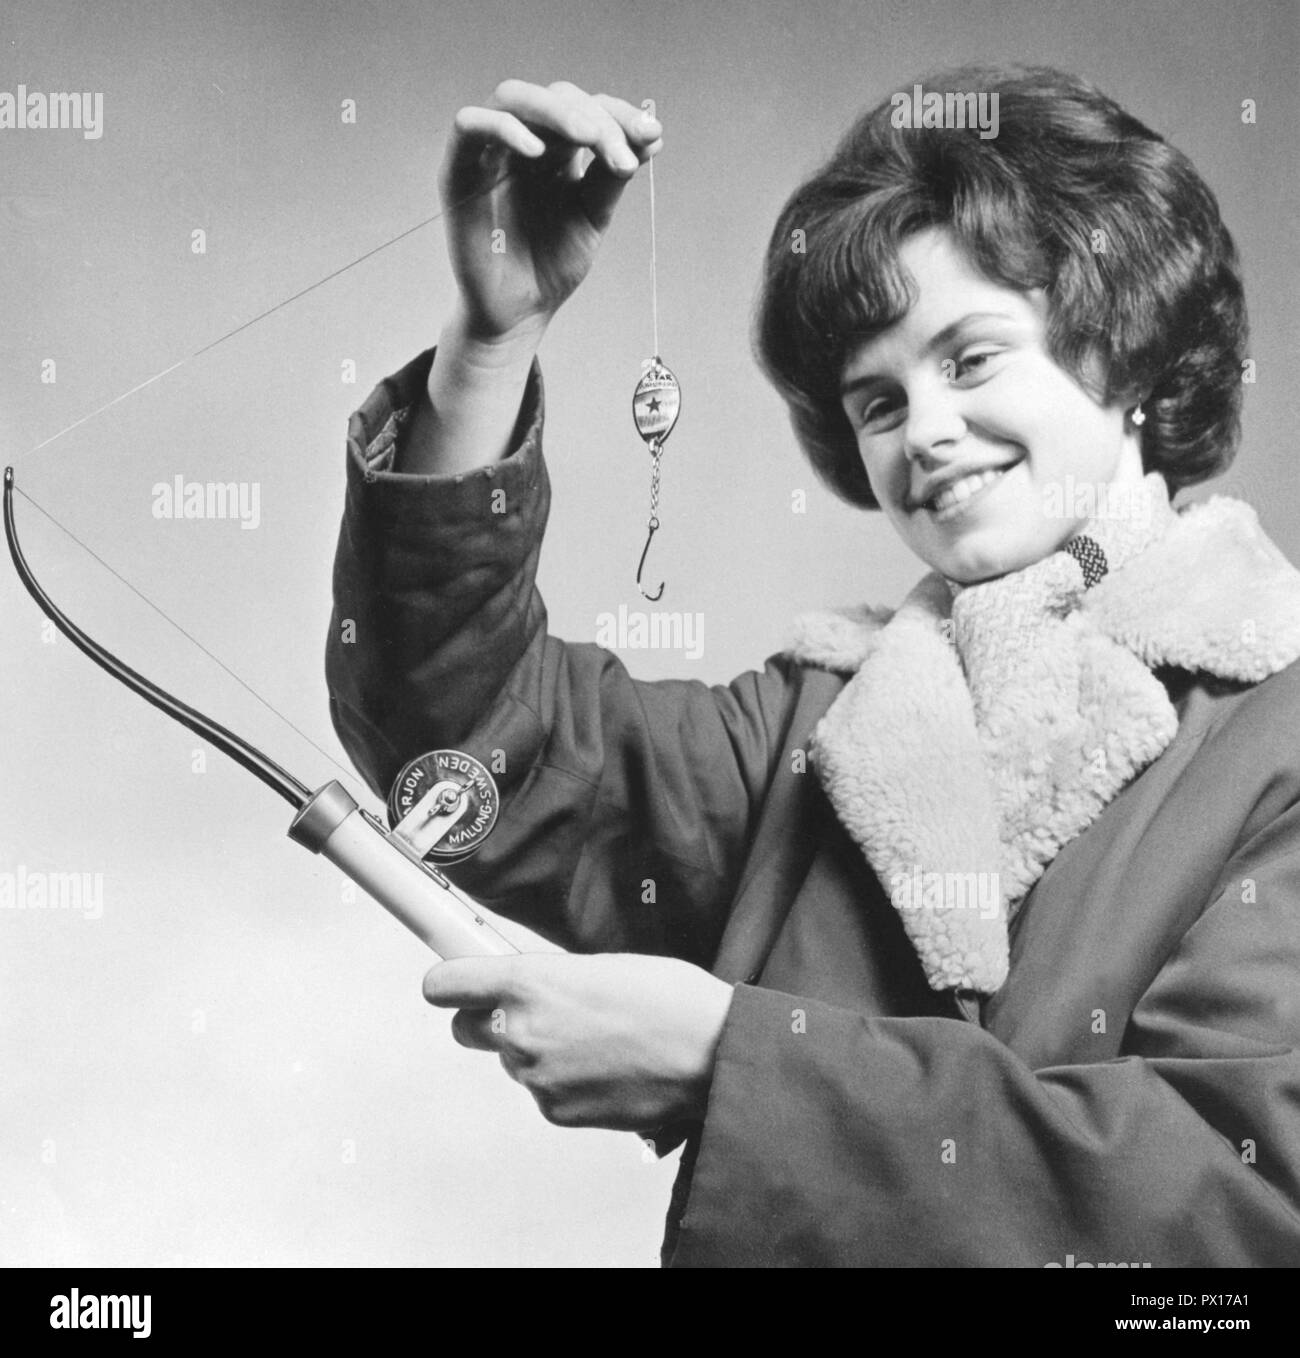 Fishing in the 1960s. A woman is holding an fishing rod and a fishing lure especially used when ice-fishing through a drilled hole in the ice. Sweden 1960s. - Stock Image